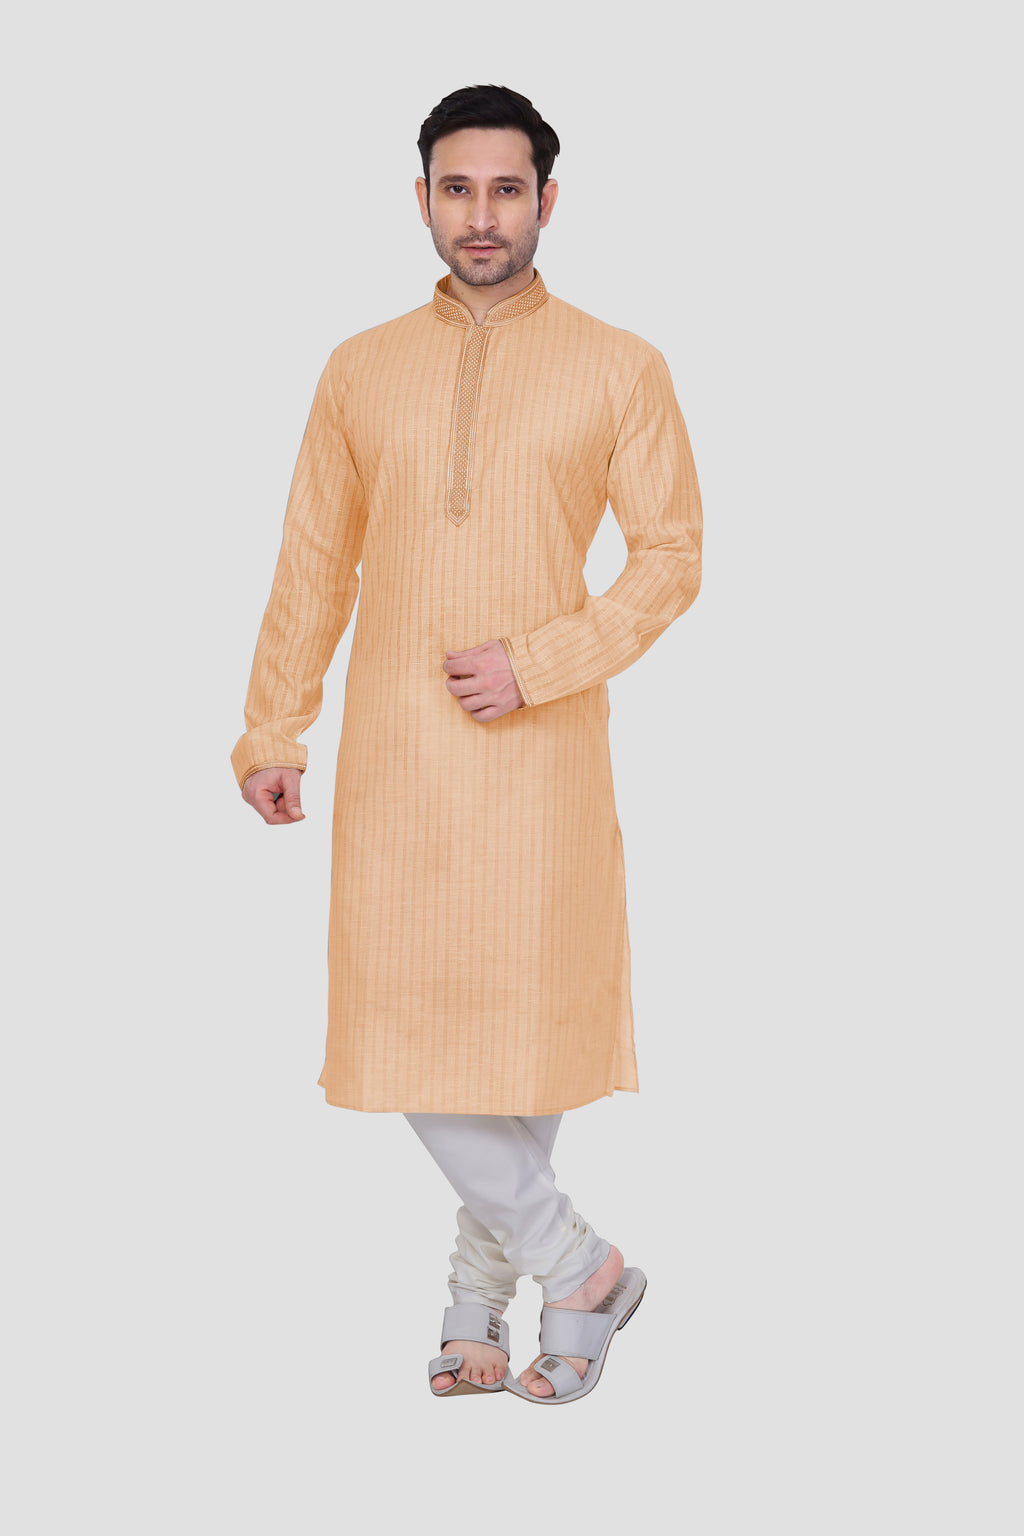 Ethniz - Men's Sherbet Orange Kurta with Churidar